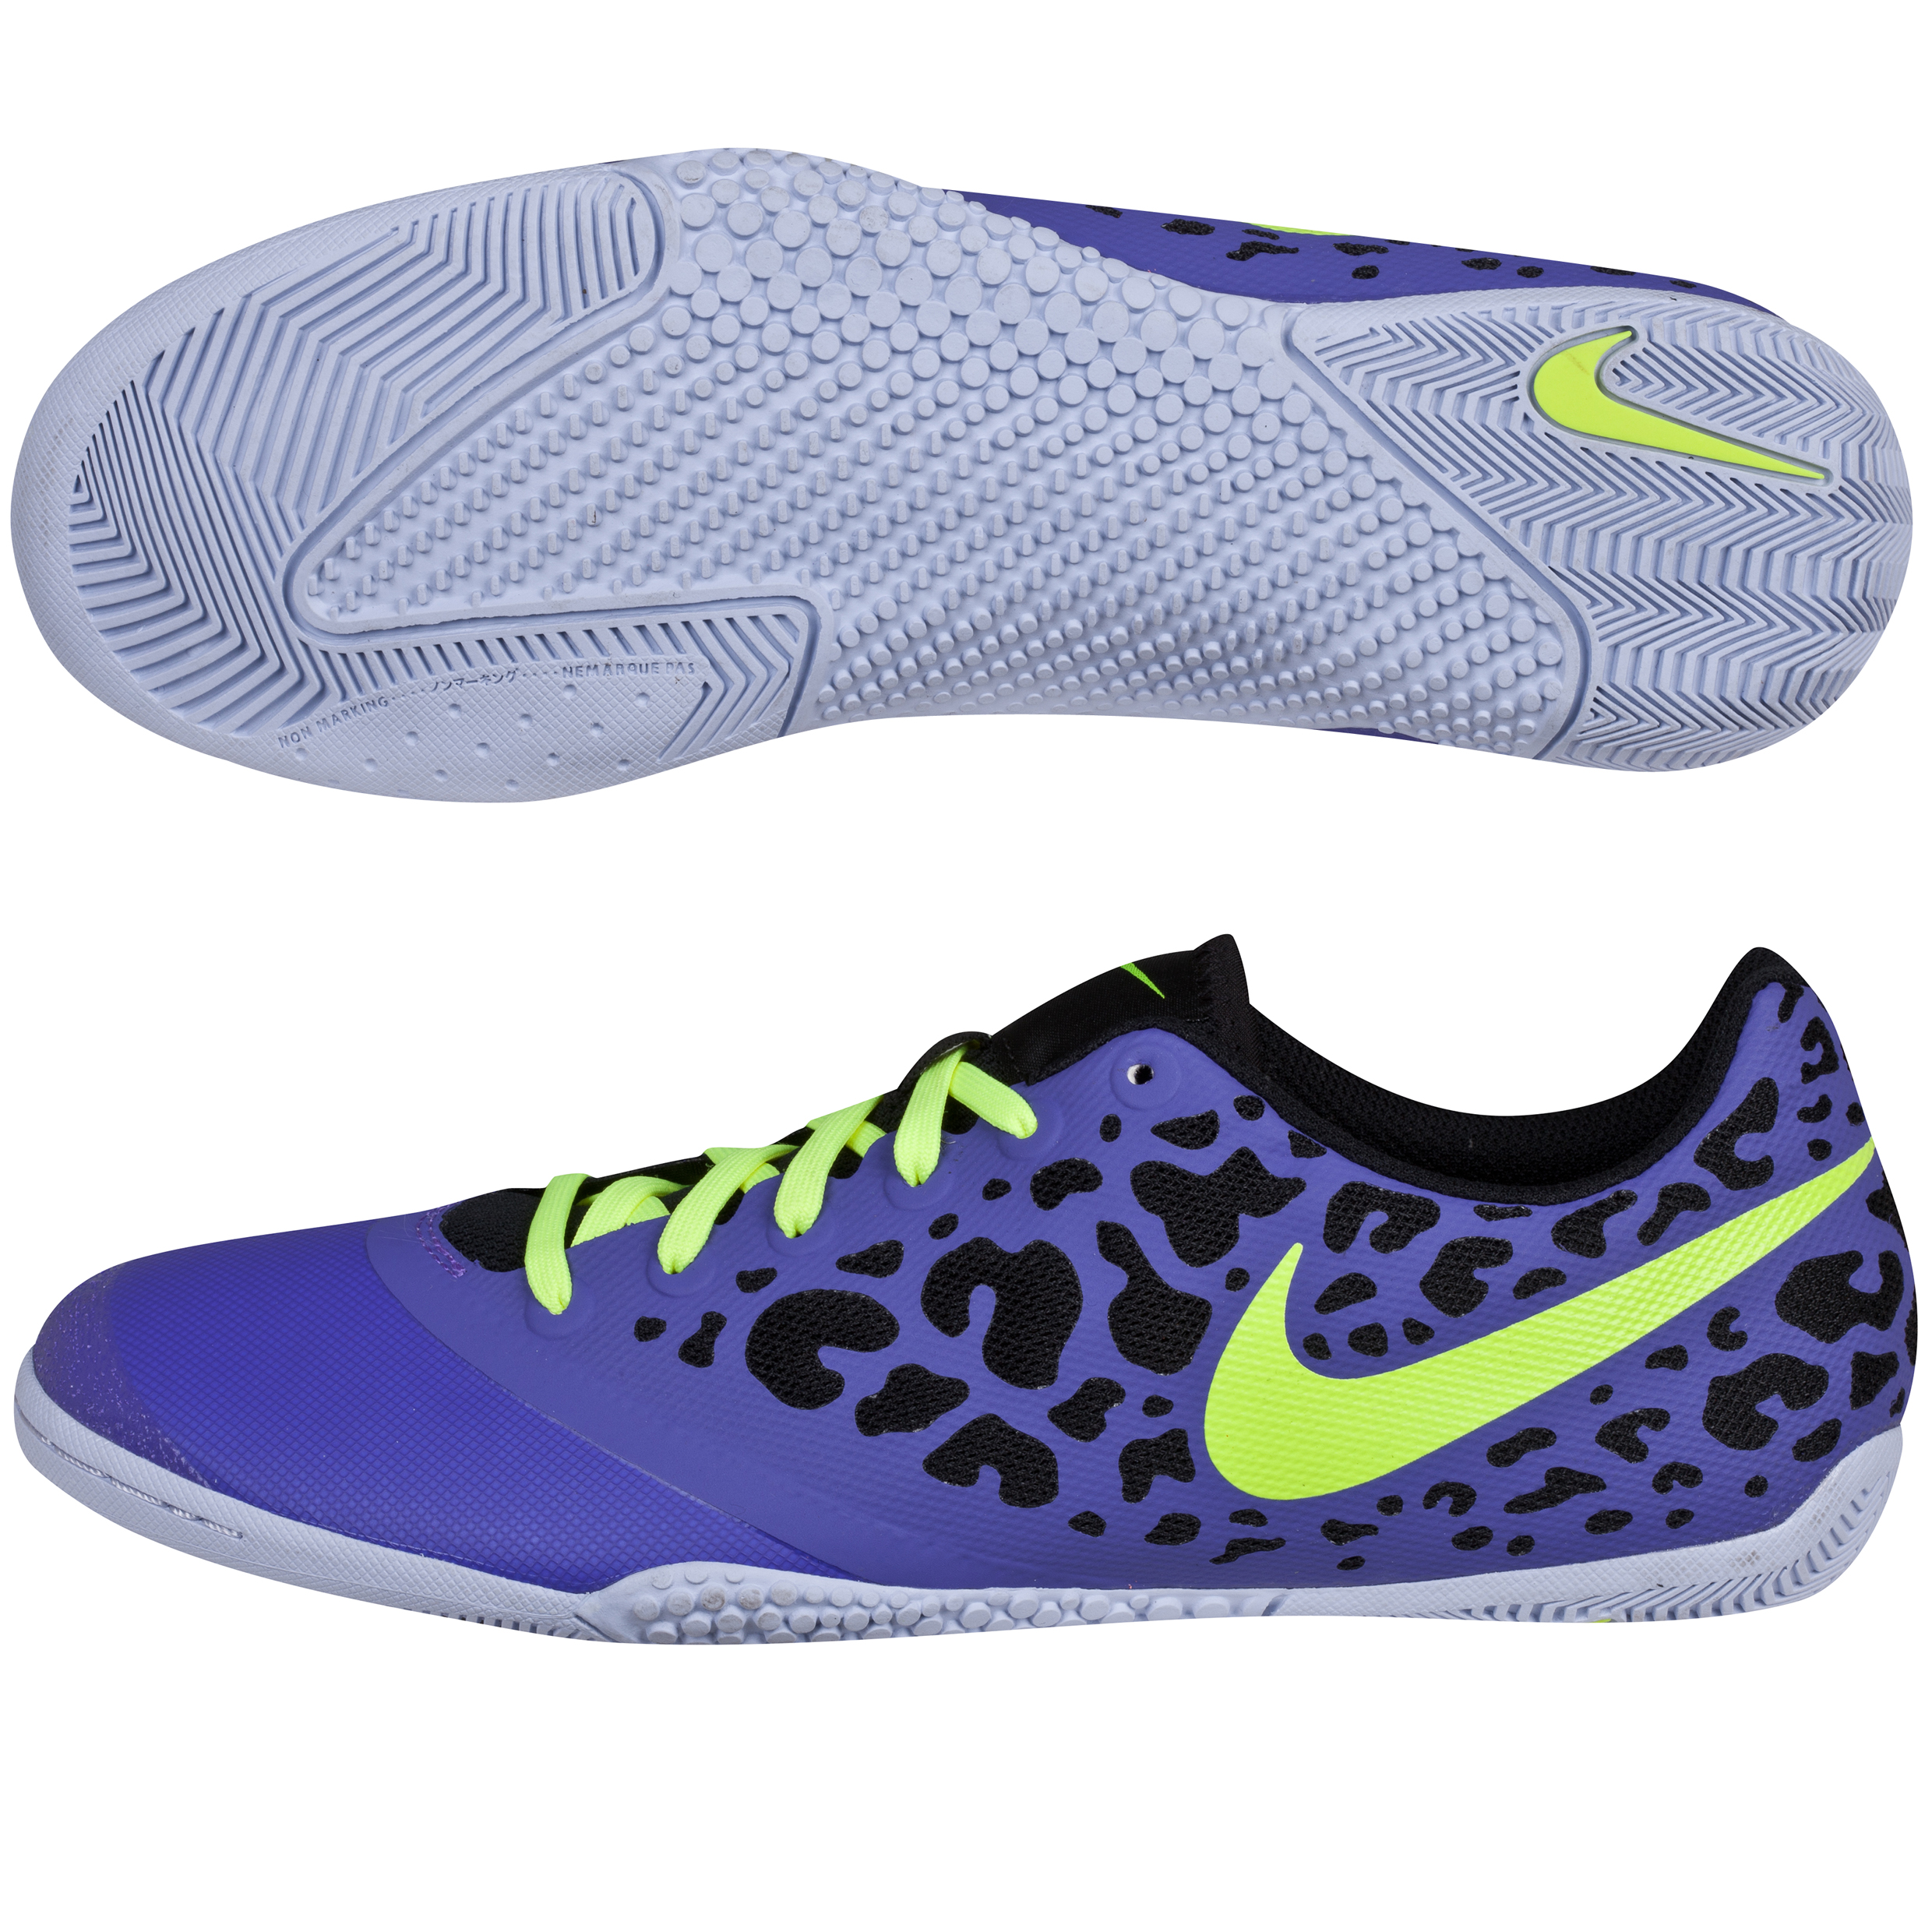 Nike Elastico Pro II Trainers-Pure Purple/Volt/Plst Purple/Black Purple